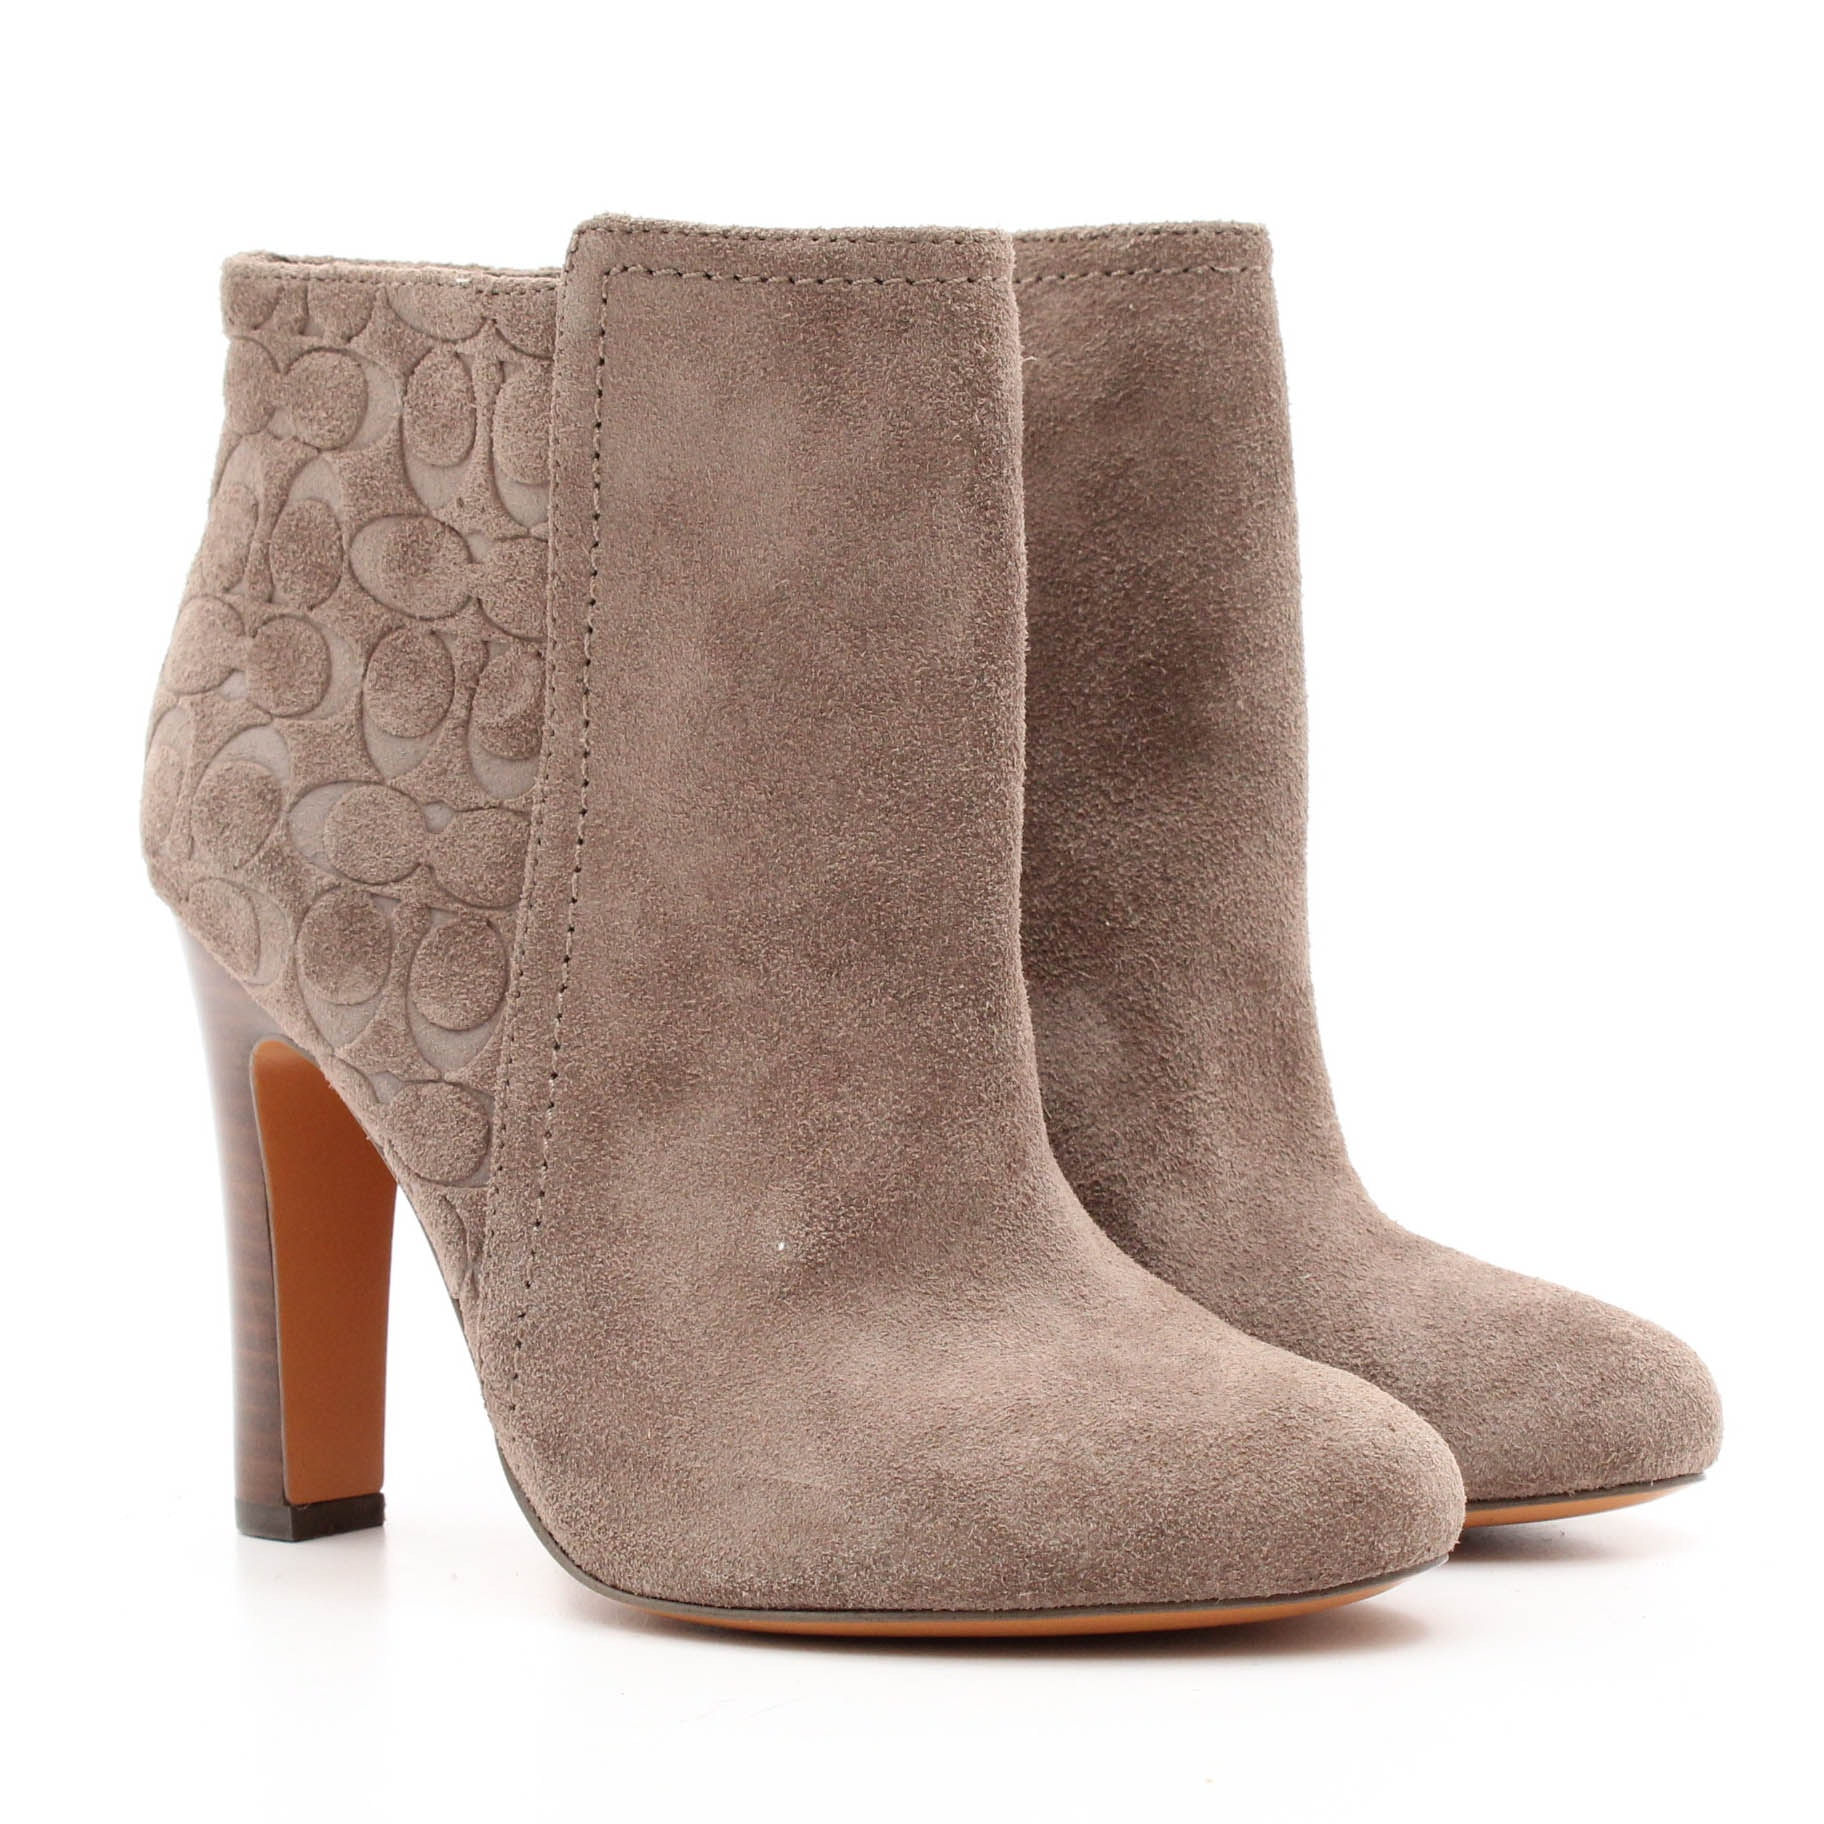 Coach Grey Suede Ankle Boots